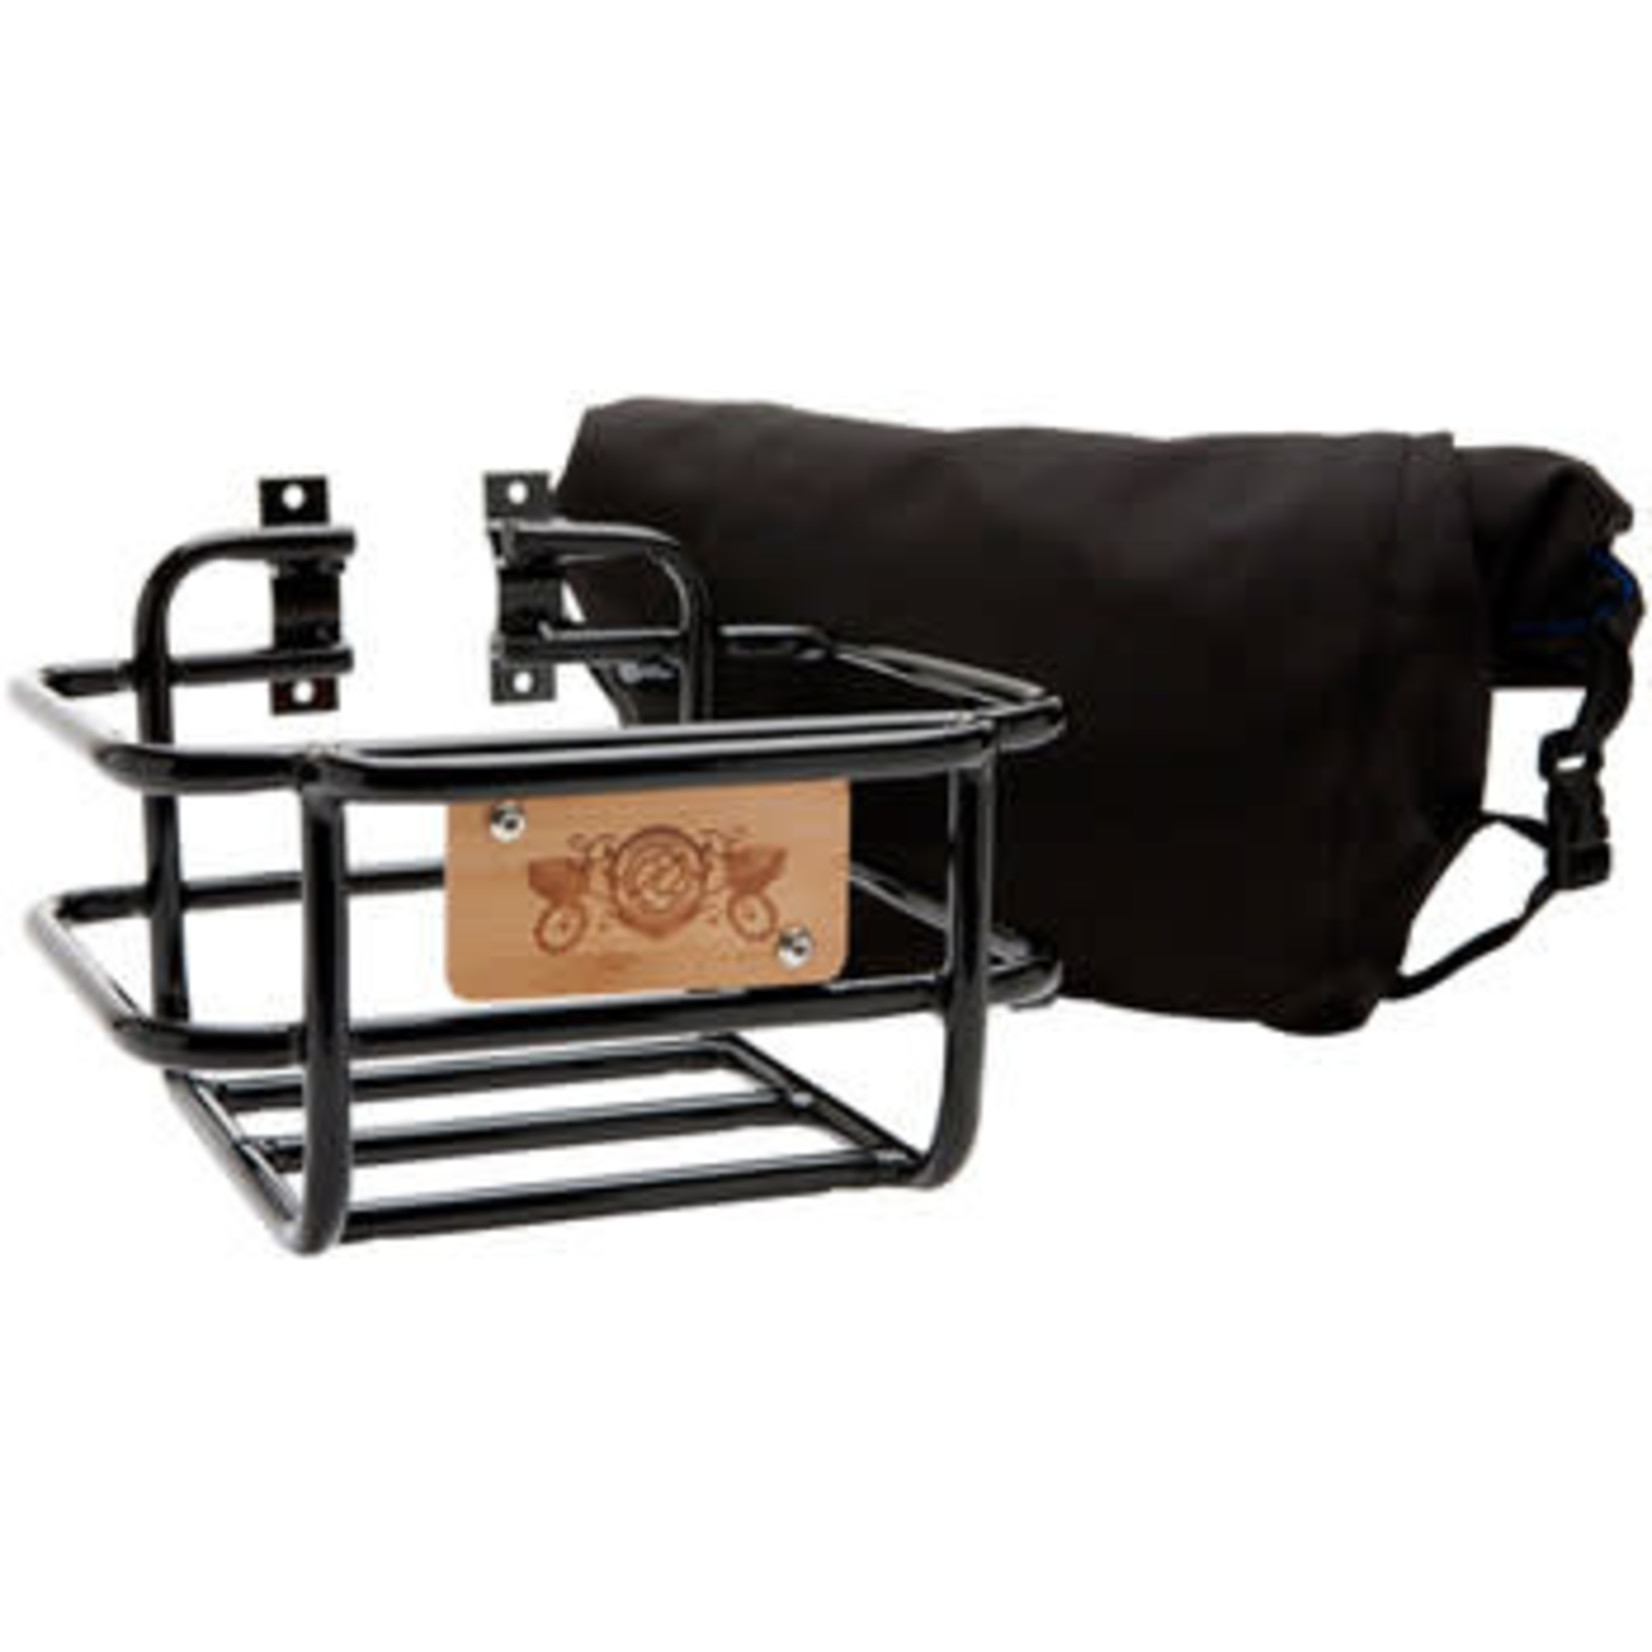 PDW Takeout Basket with Roll-Top Bag